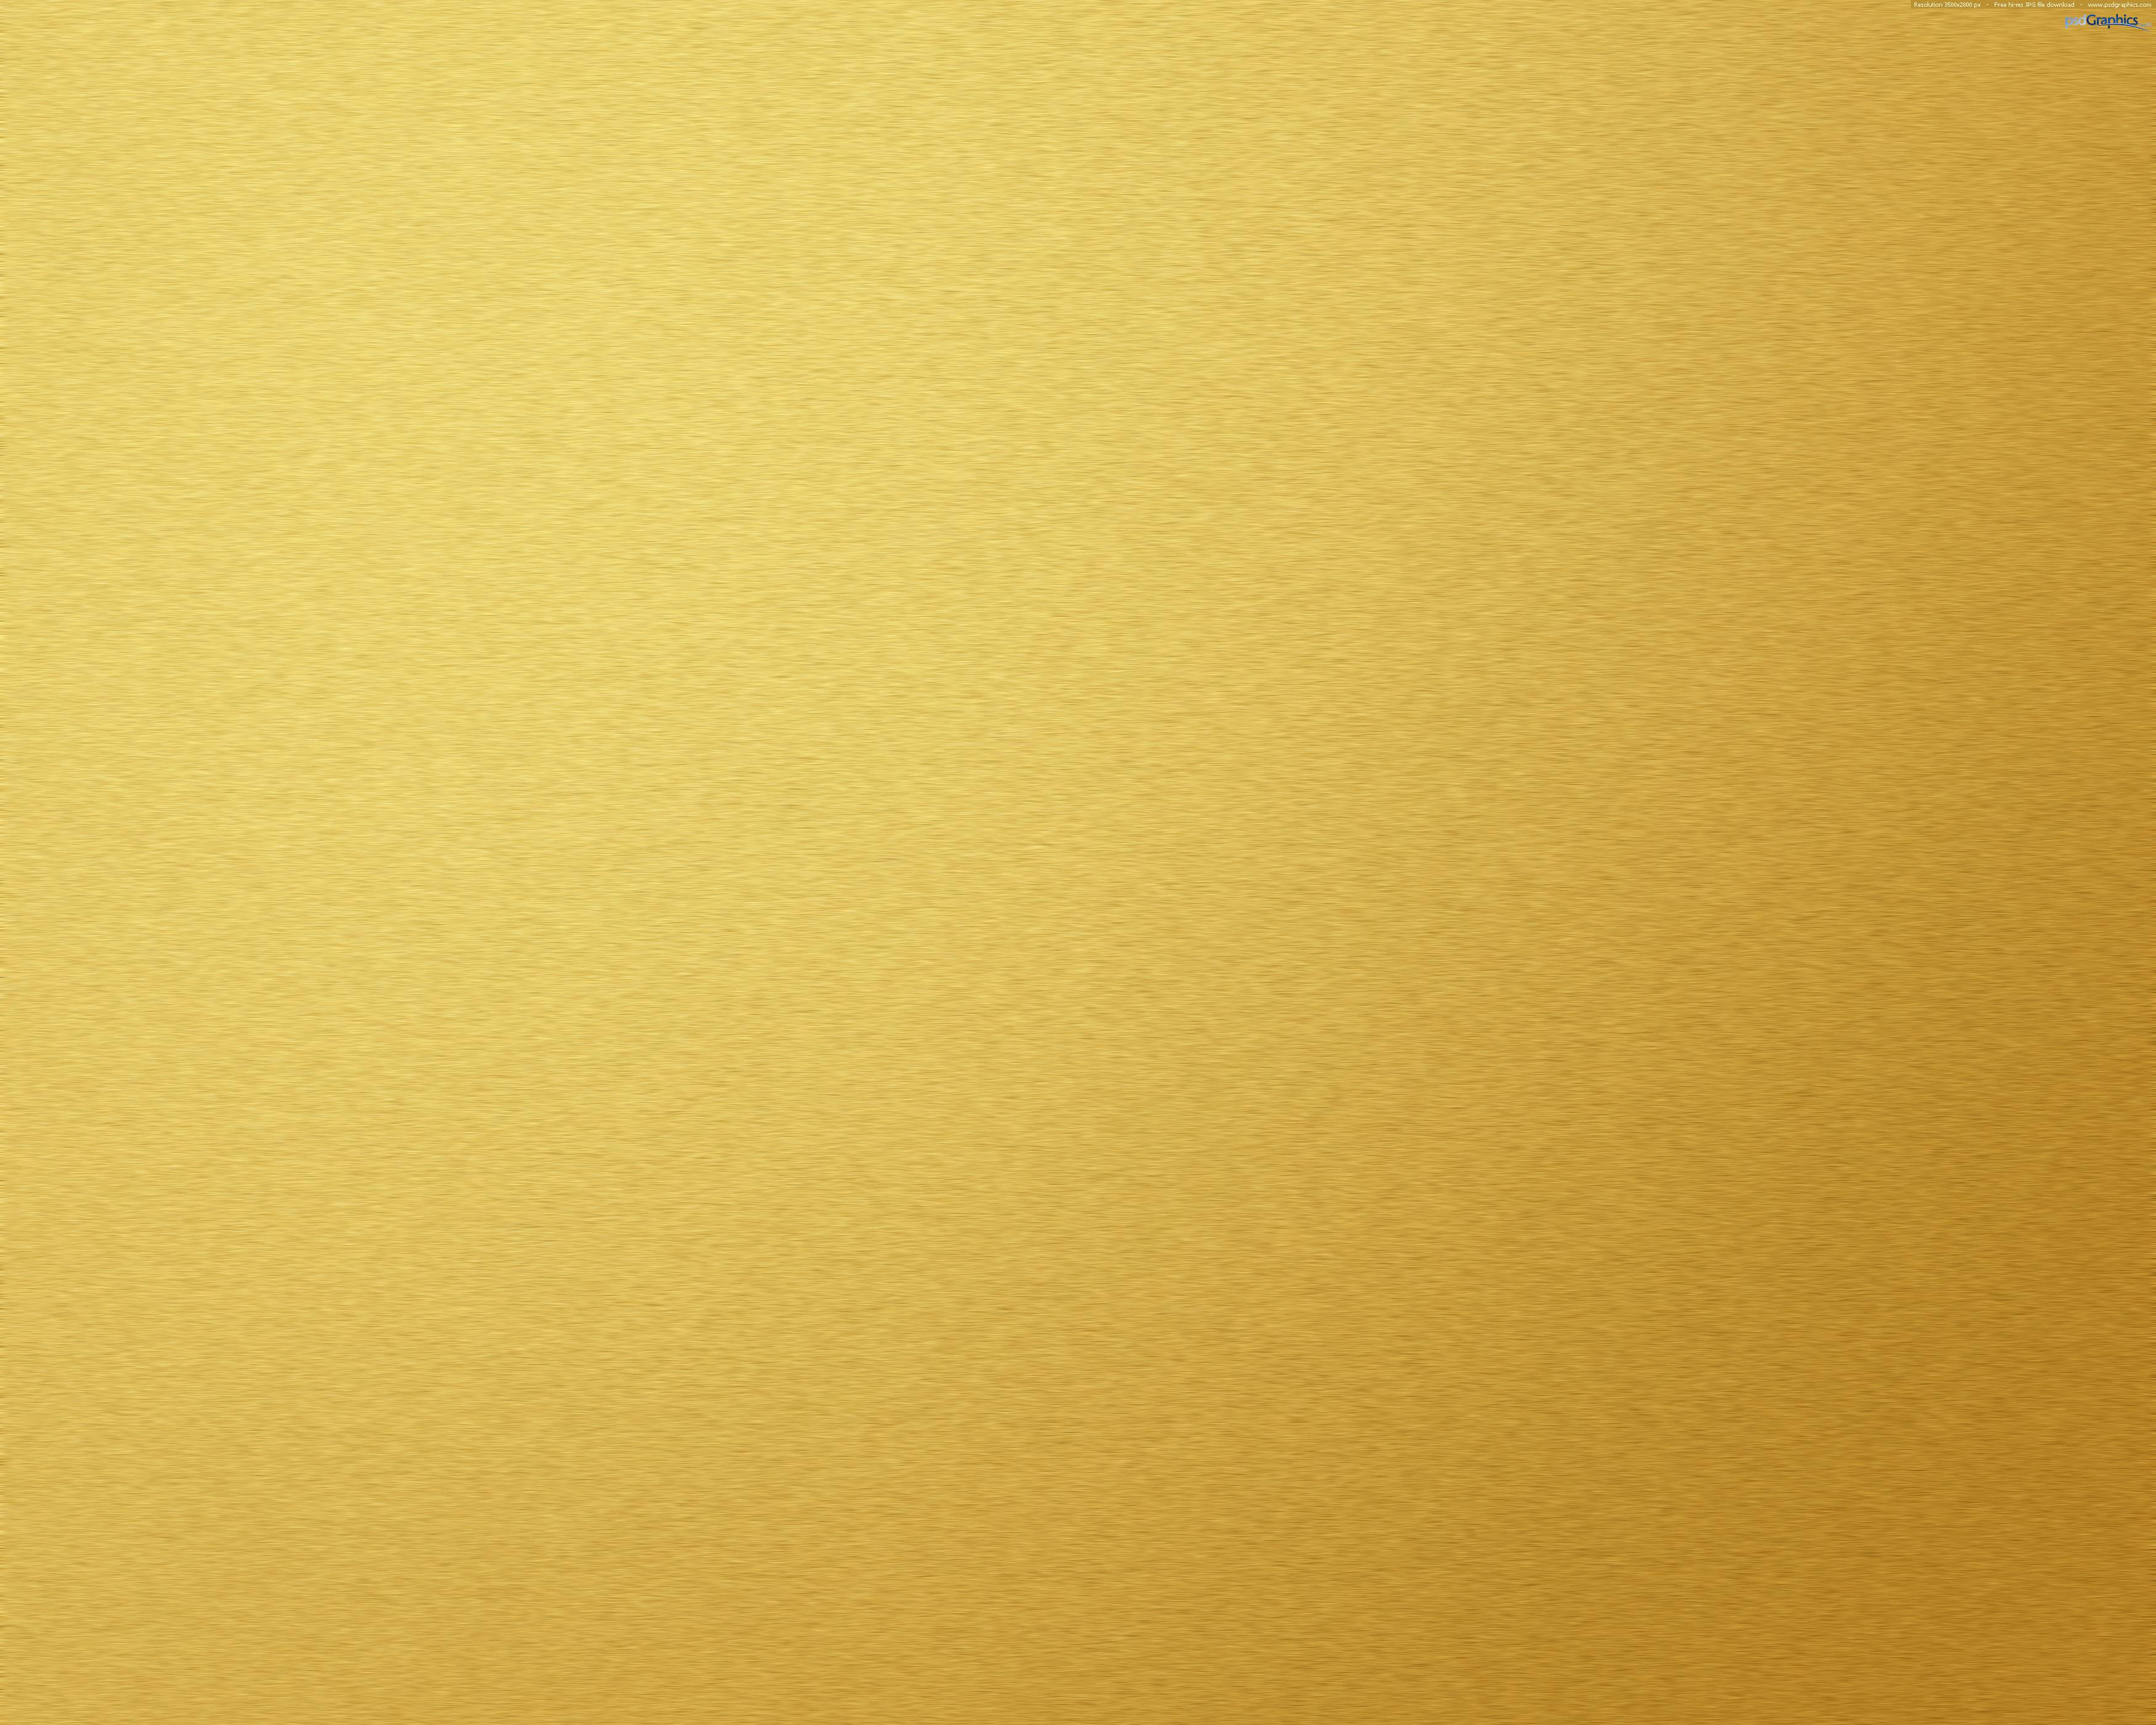 gold color backgrounds wallpaper cave